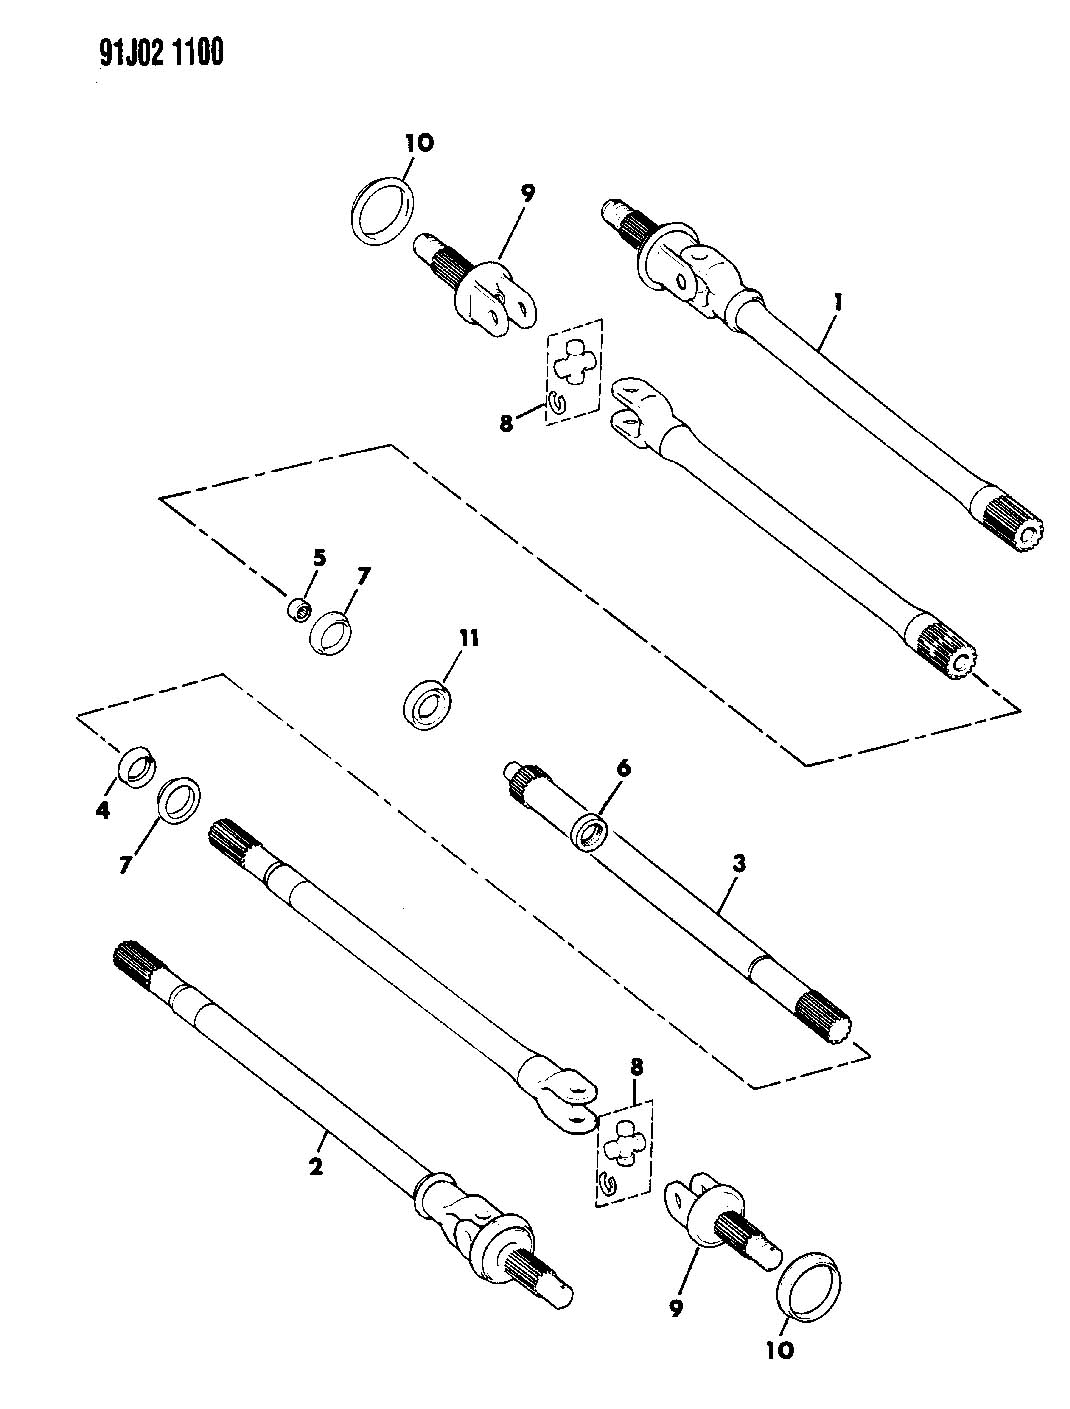 1993 Jeep Wrangler SHAFTS, FRONT AXLE W/DISCONNECT